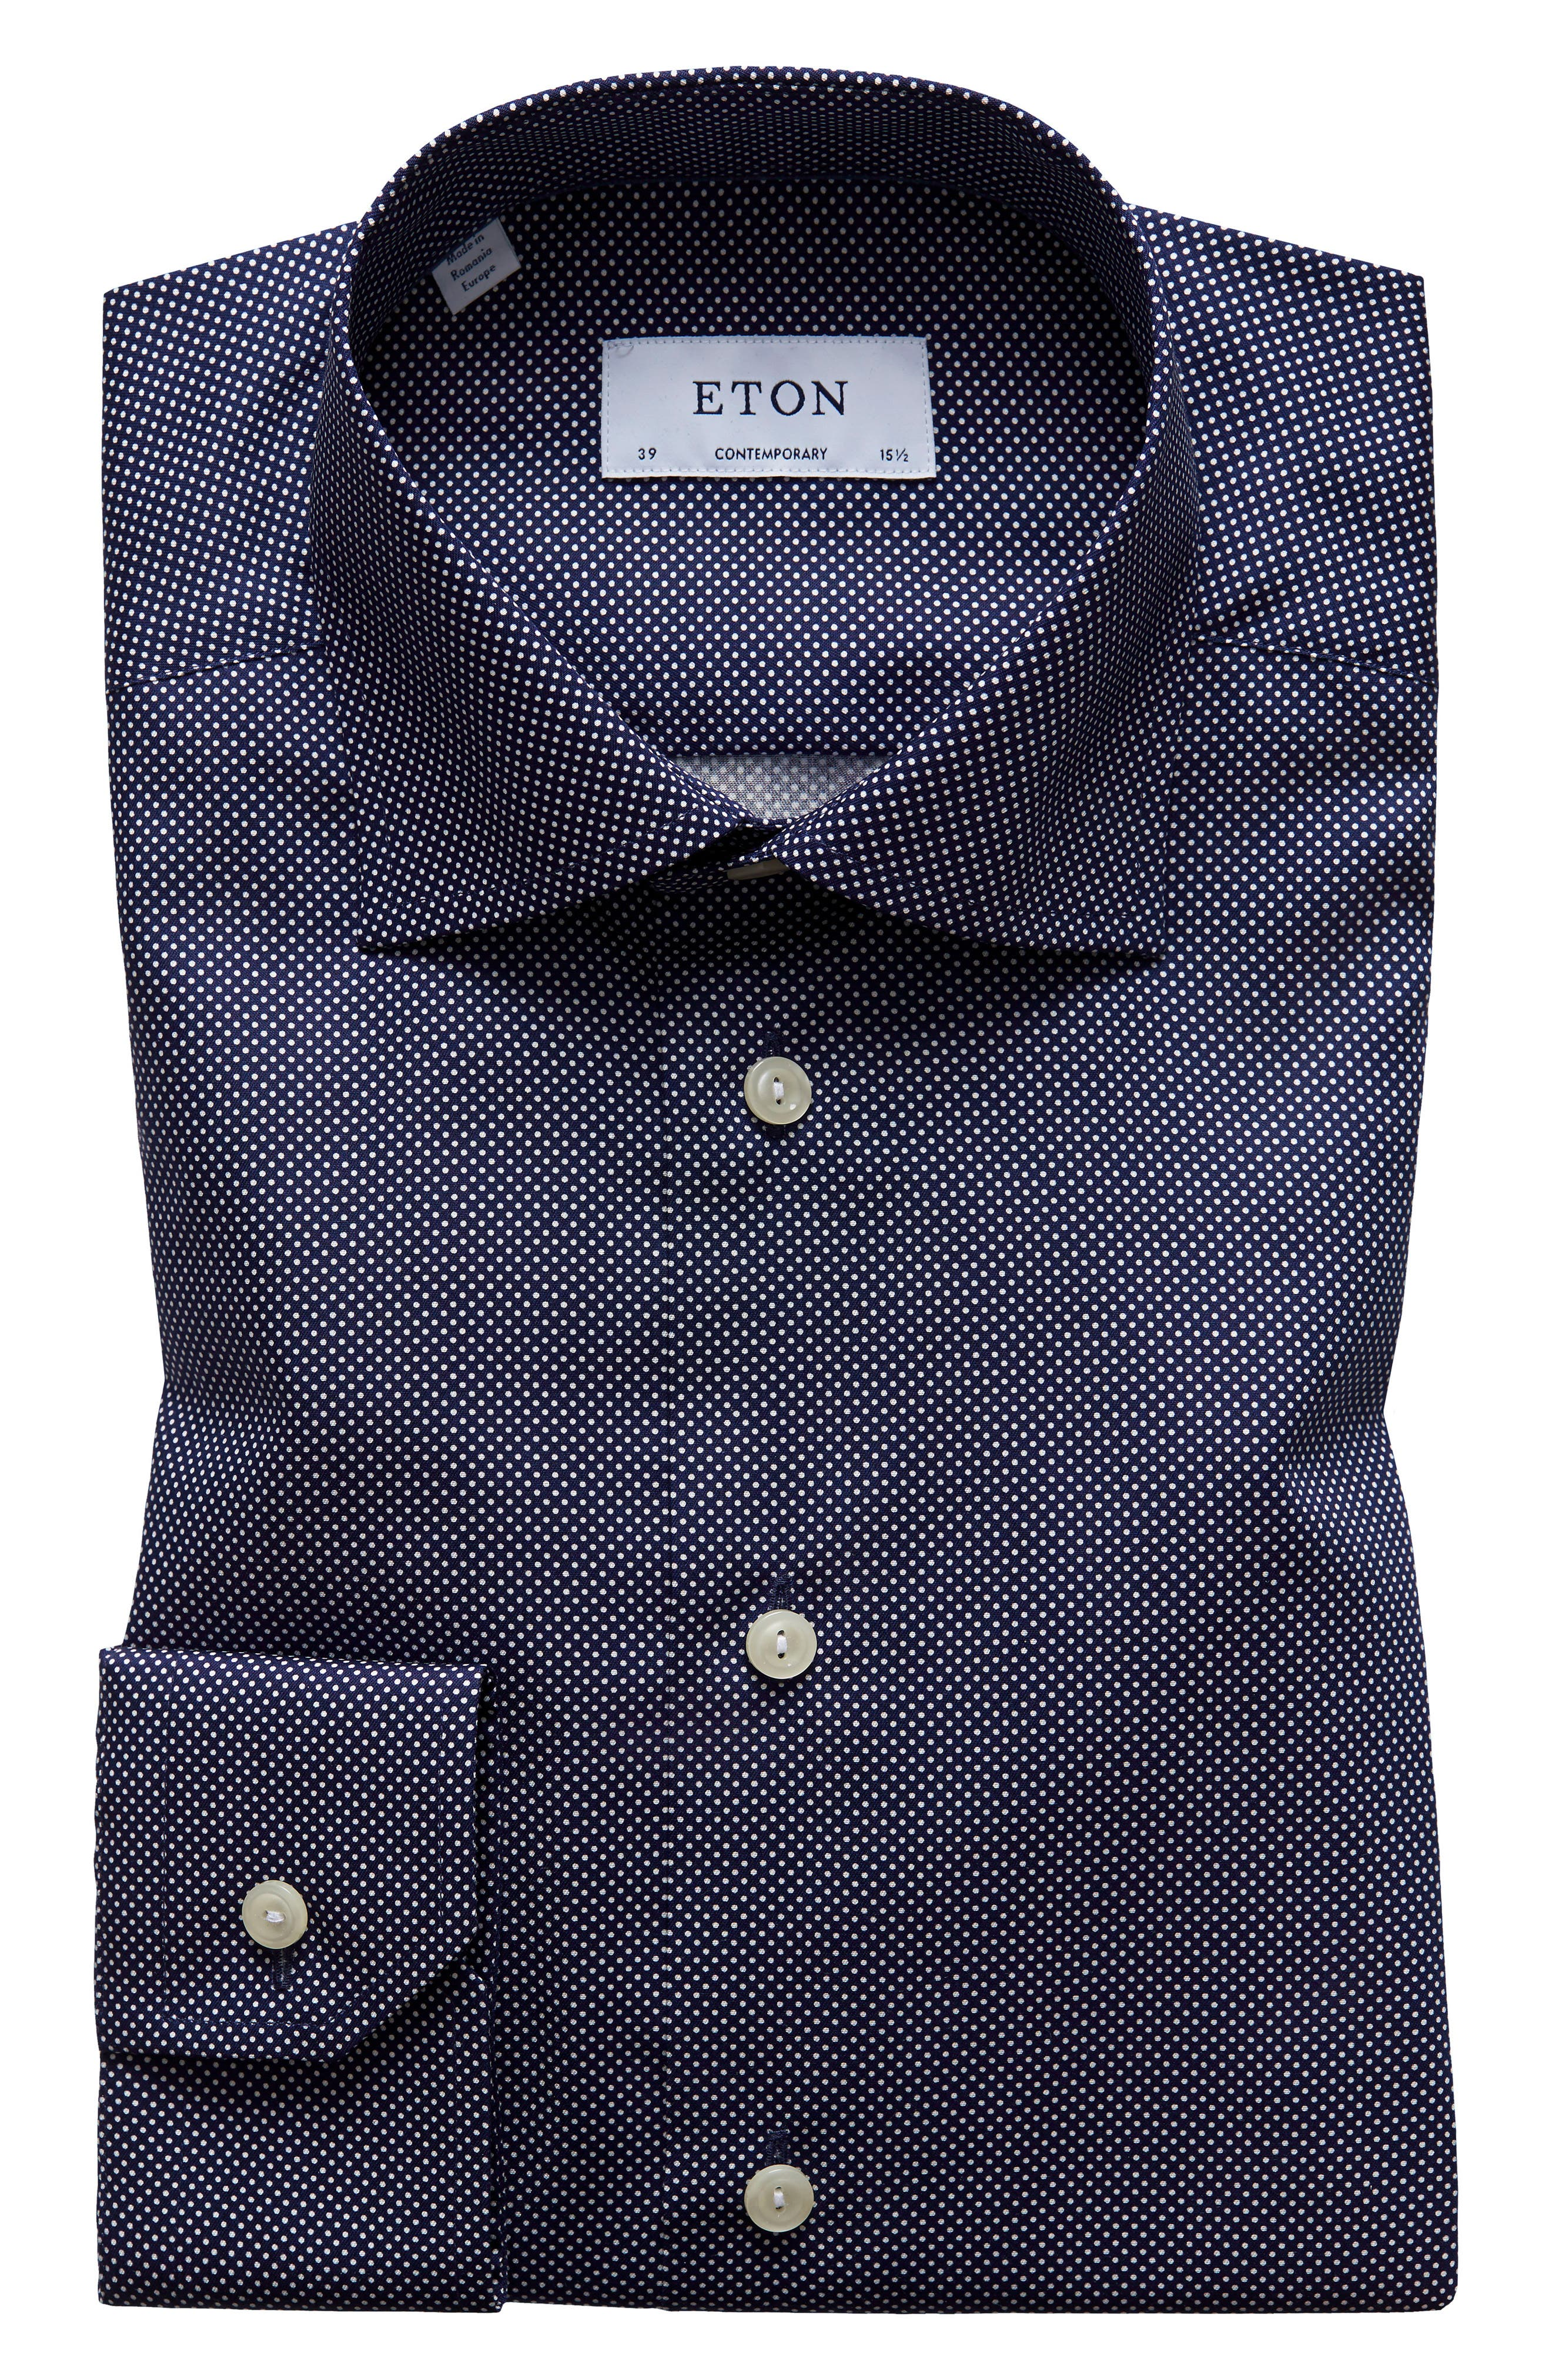 Contemporary Fit Signature Polka Dot Dress Shirt,                             Alternate thumbnail 2, color,                             BLUE